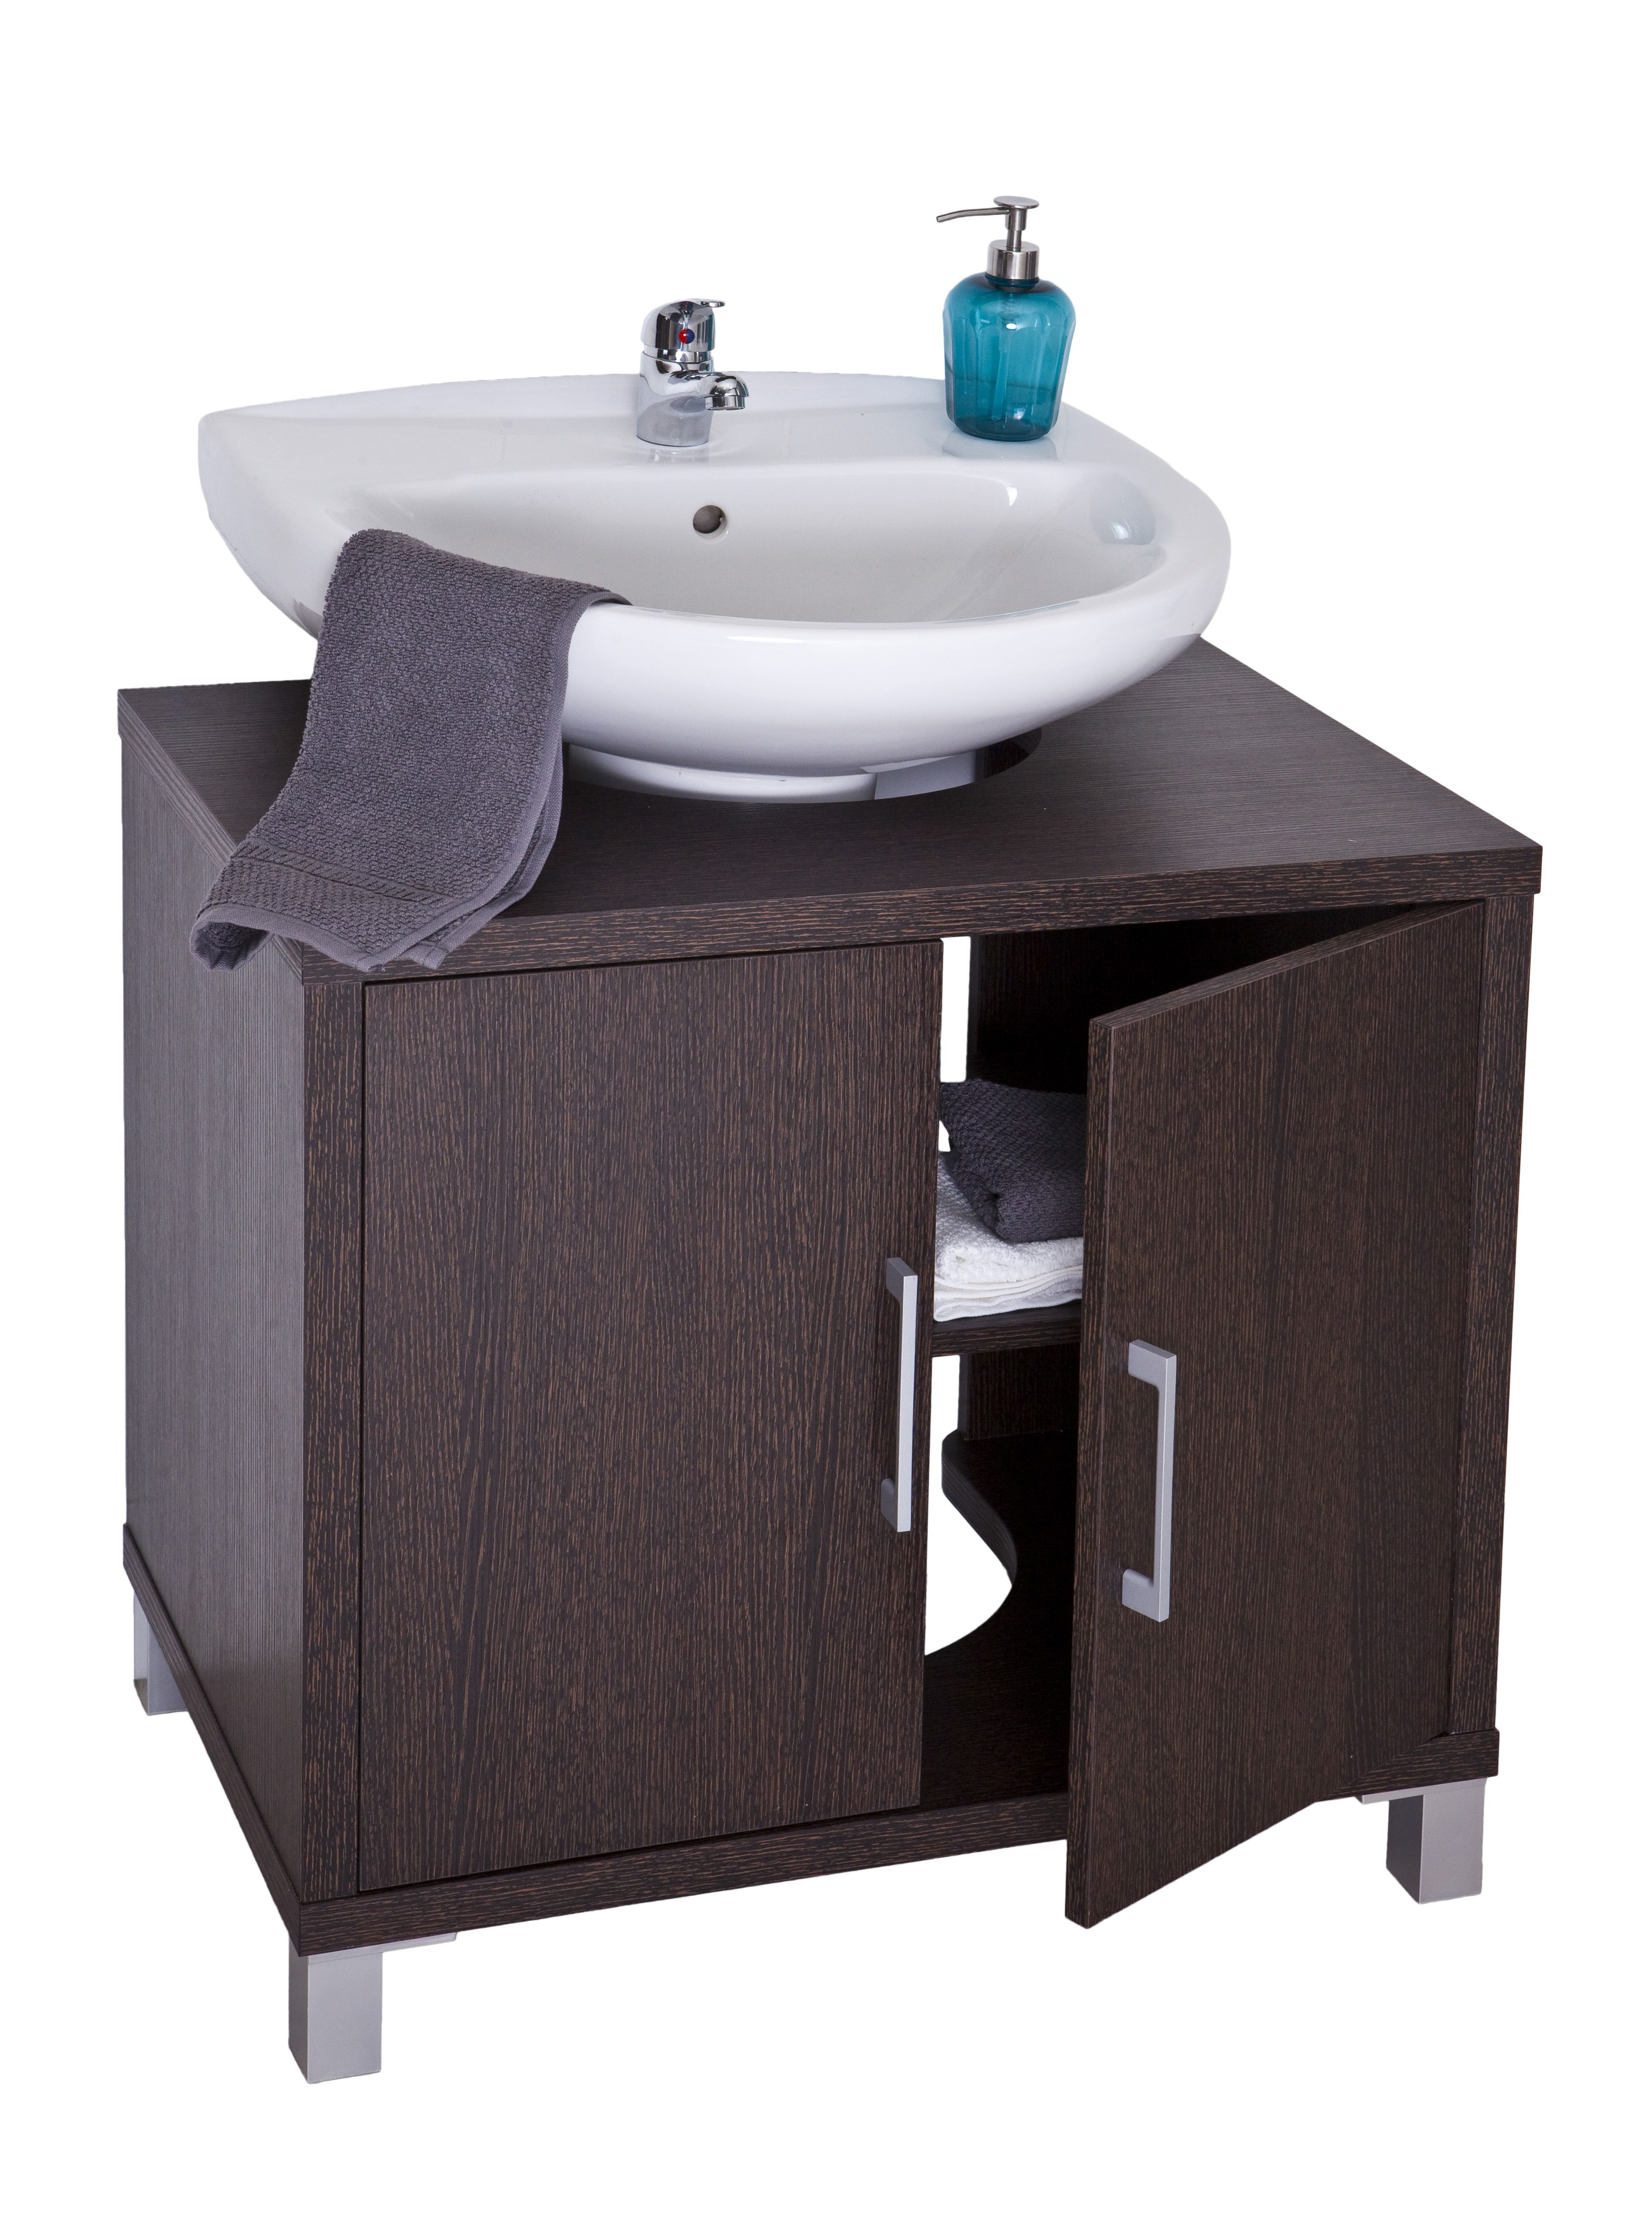 Mueble con lavabo dise os arquitect nicos for Mueble lavabo pie